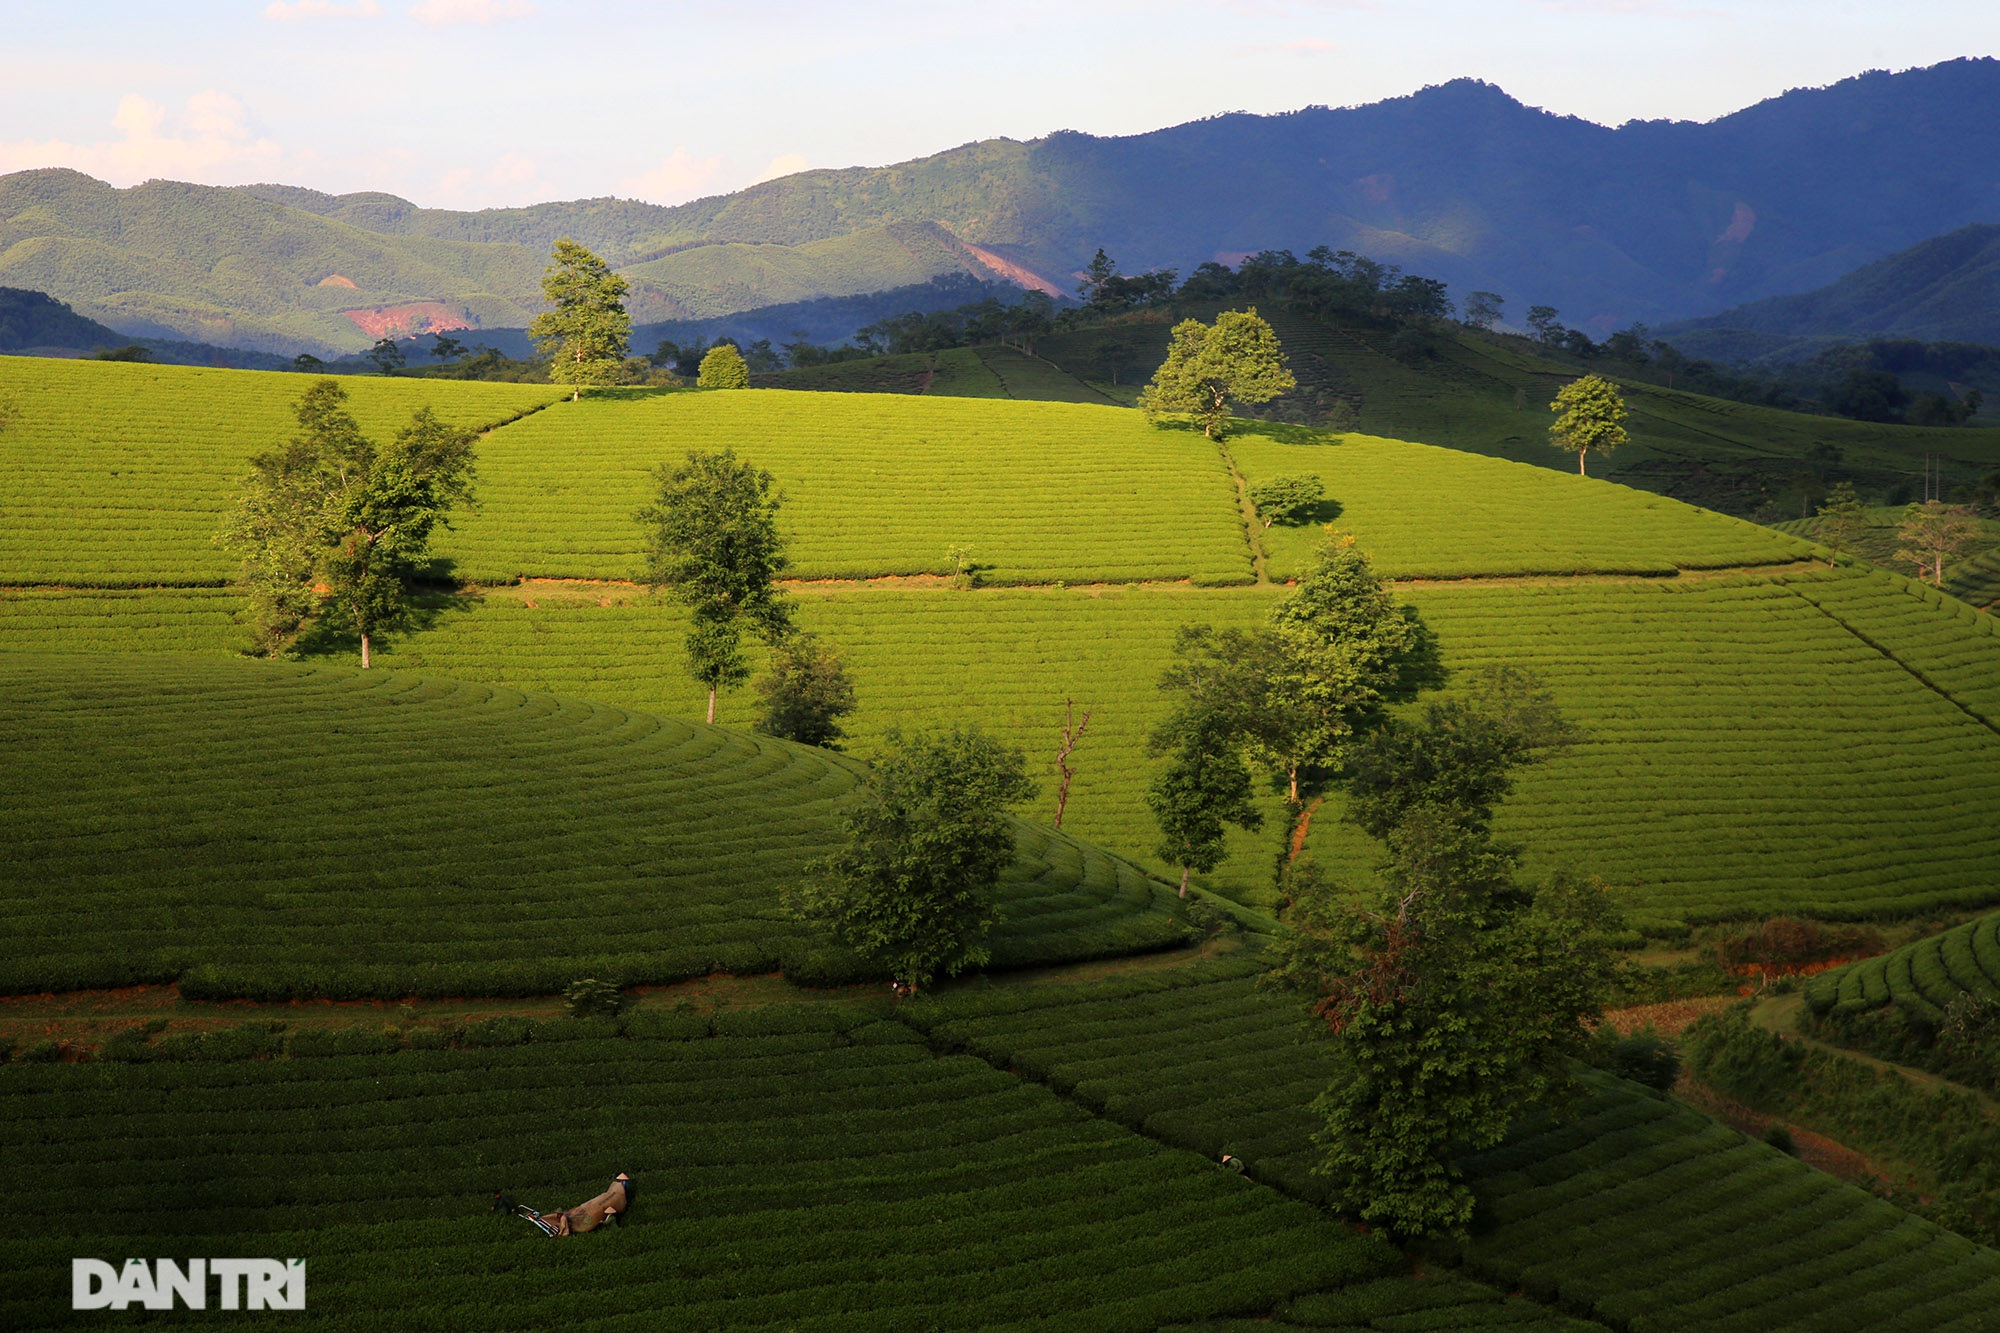 The stunning scenery of Long Coc tea hills in Phu Tho - 9